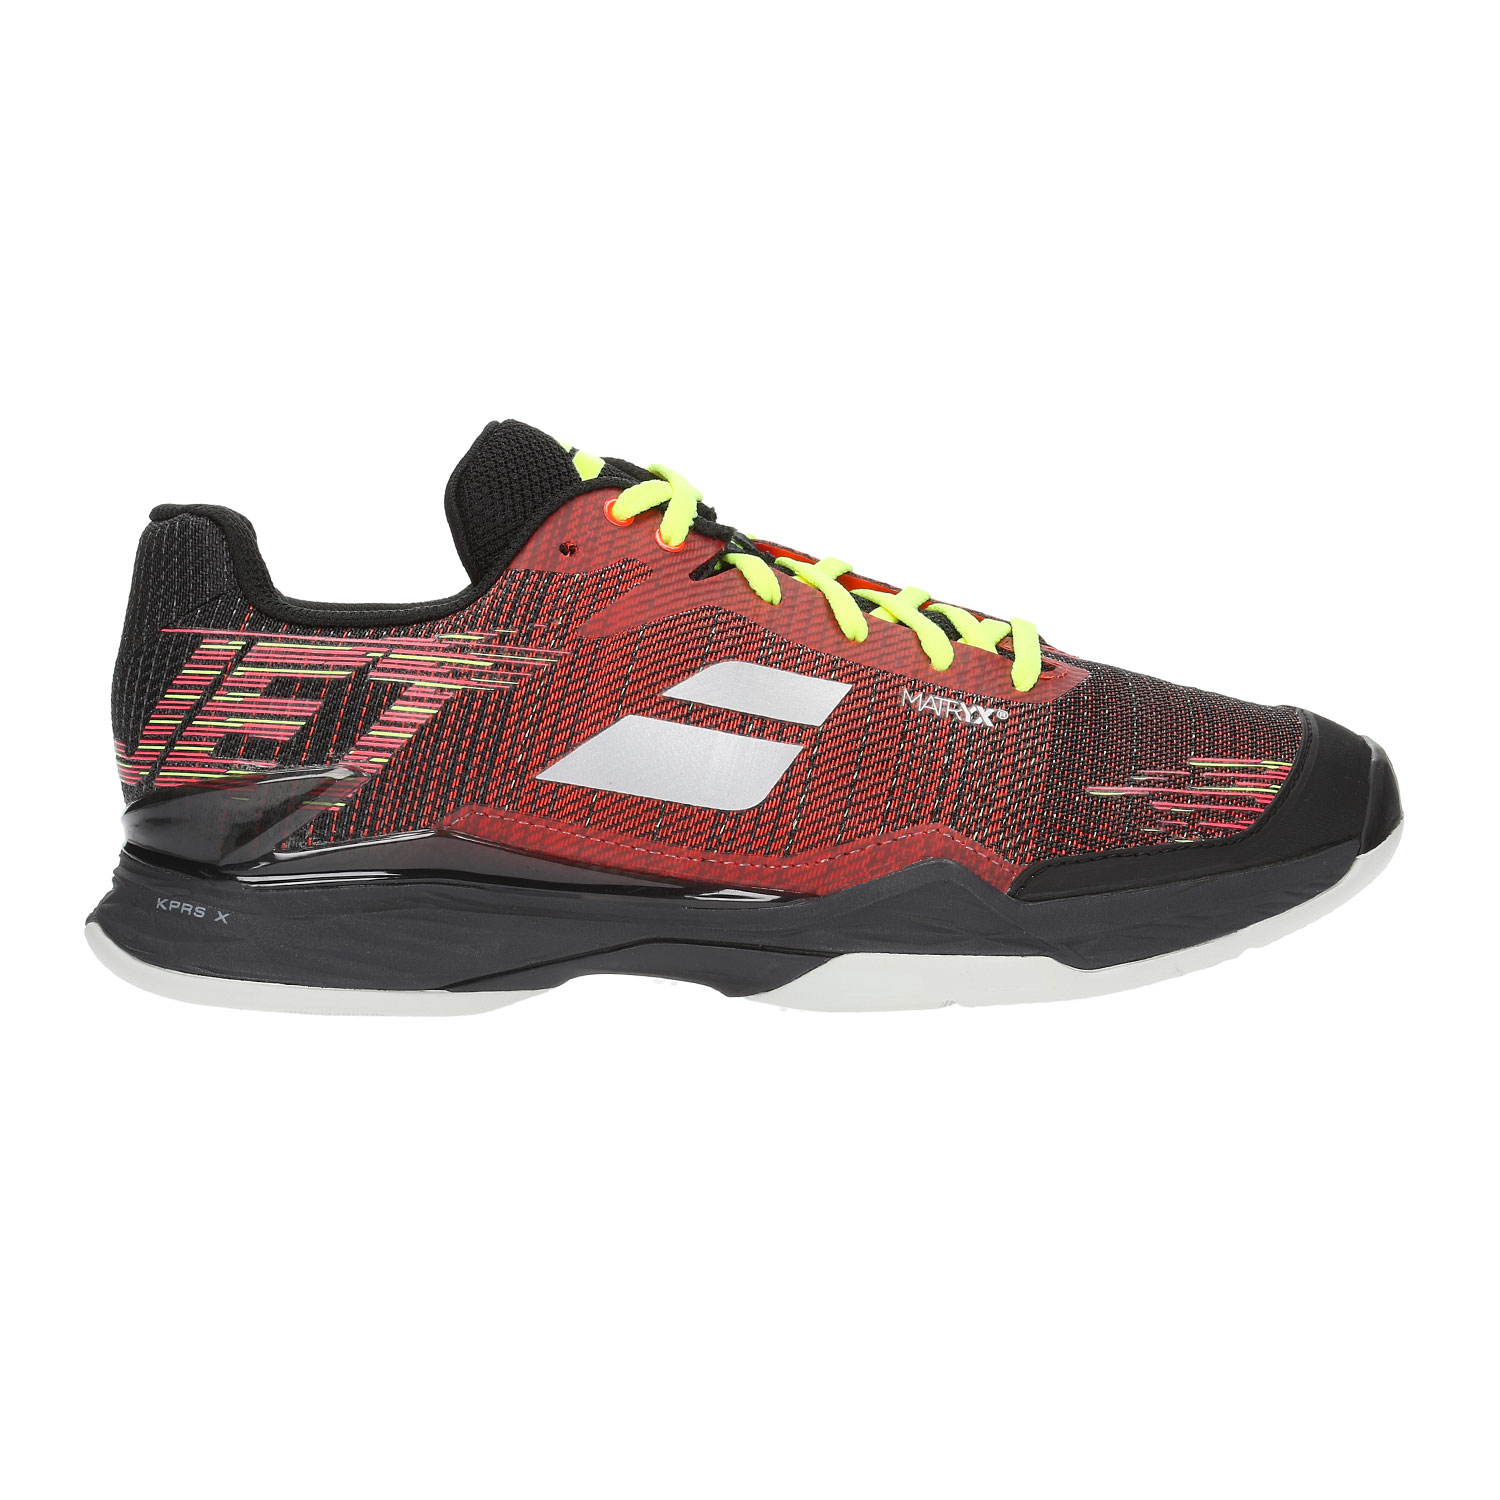 Babolat Tennis Shoes >> Babolat Jet Mach Ii Clay Men S Tennis Shoes Dark Red Black